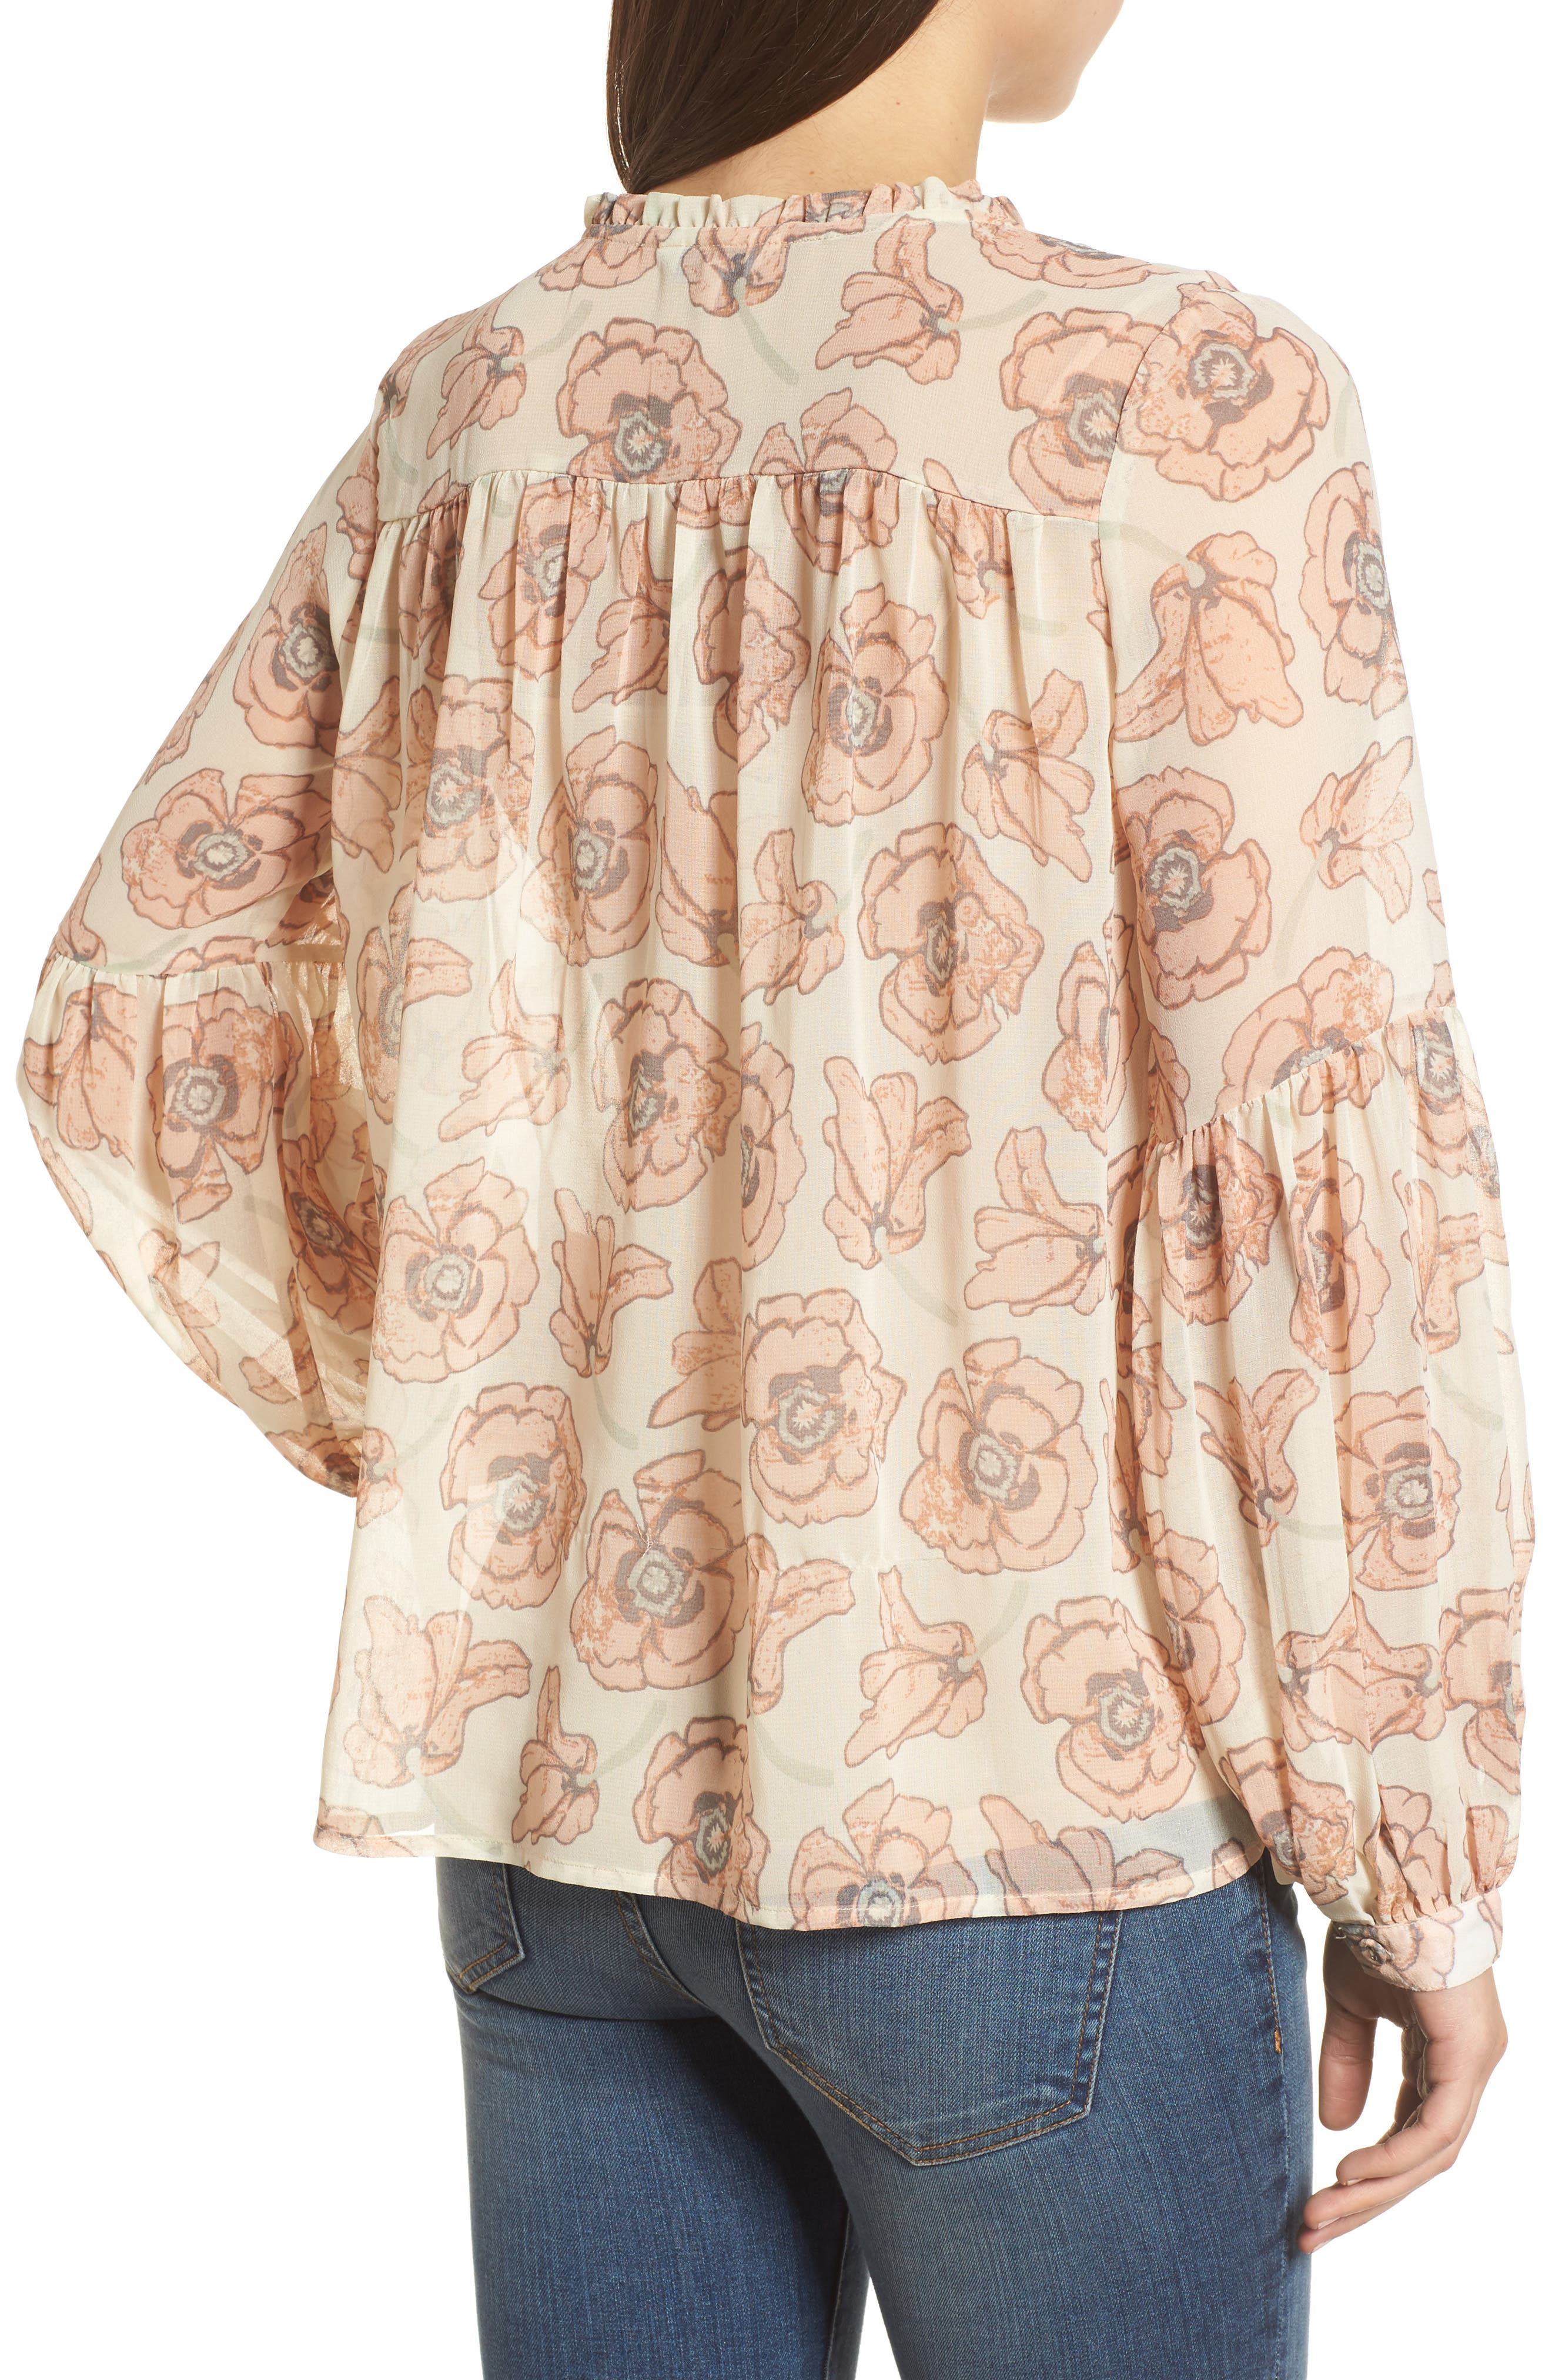 Exploded Floral Top,                             Alternate thumbnail 2, color,                             690